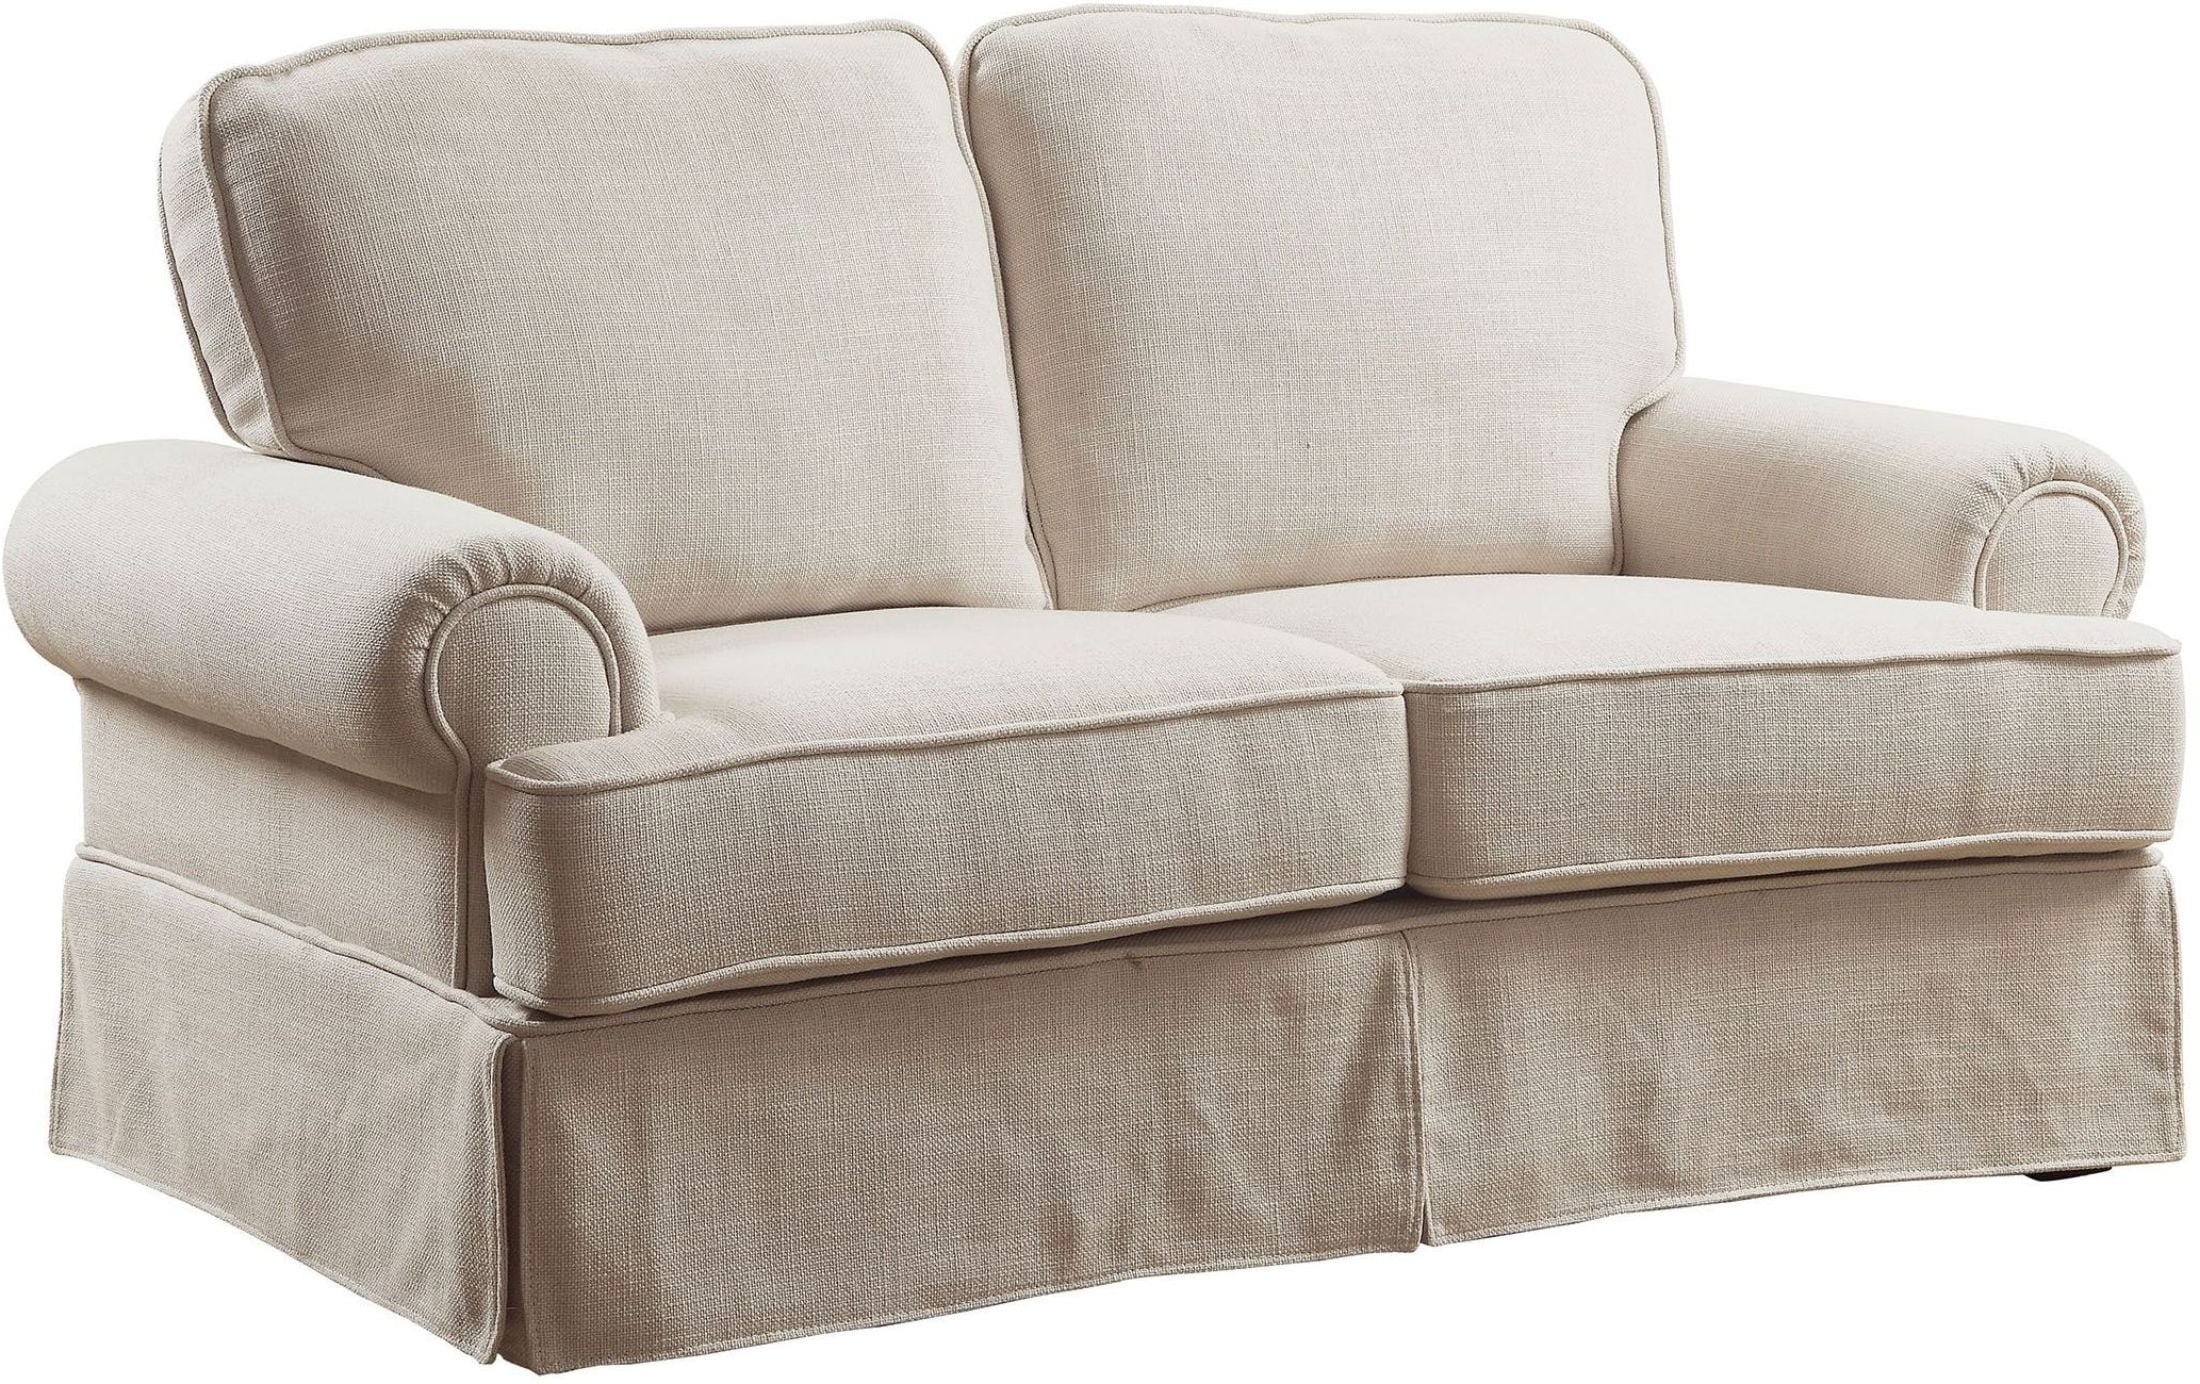 Badalona I Beige Loveseat Pertaining To Latest Deandra Loveseats With Cushions (View 1 of 25)